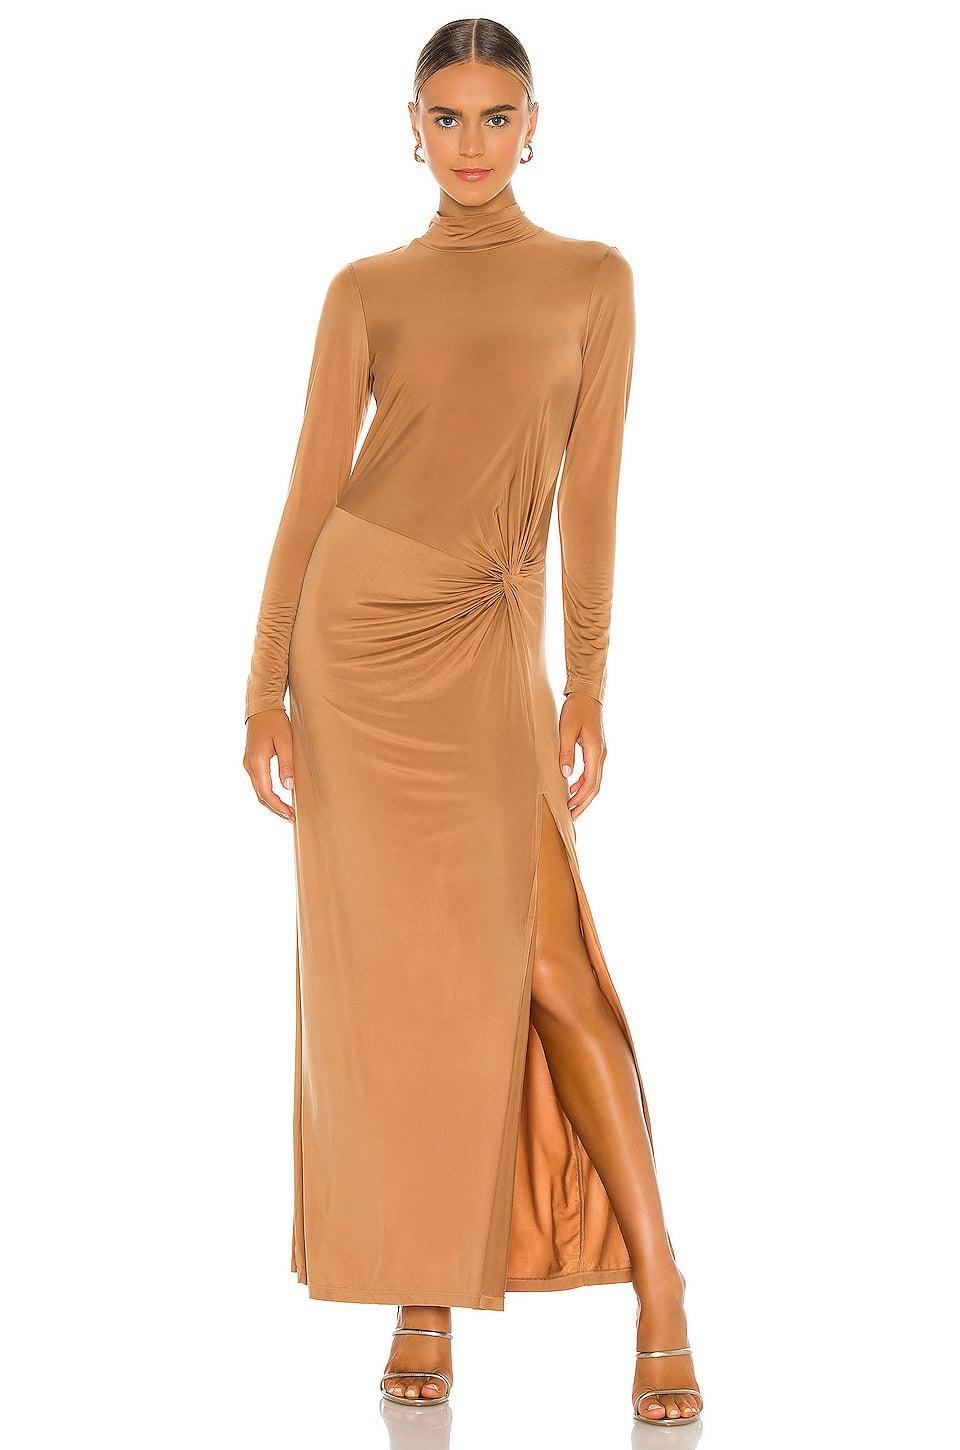 <p>No doubt, you'll turn heads in this <span>Young, Fabulous & Broke Madison Dress</span> ($233)!</p>